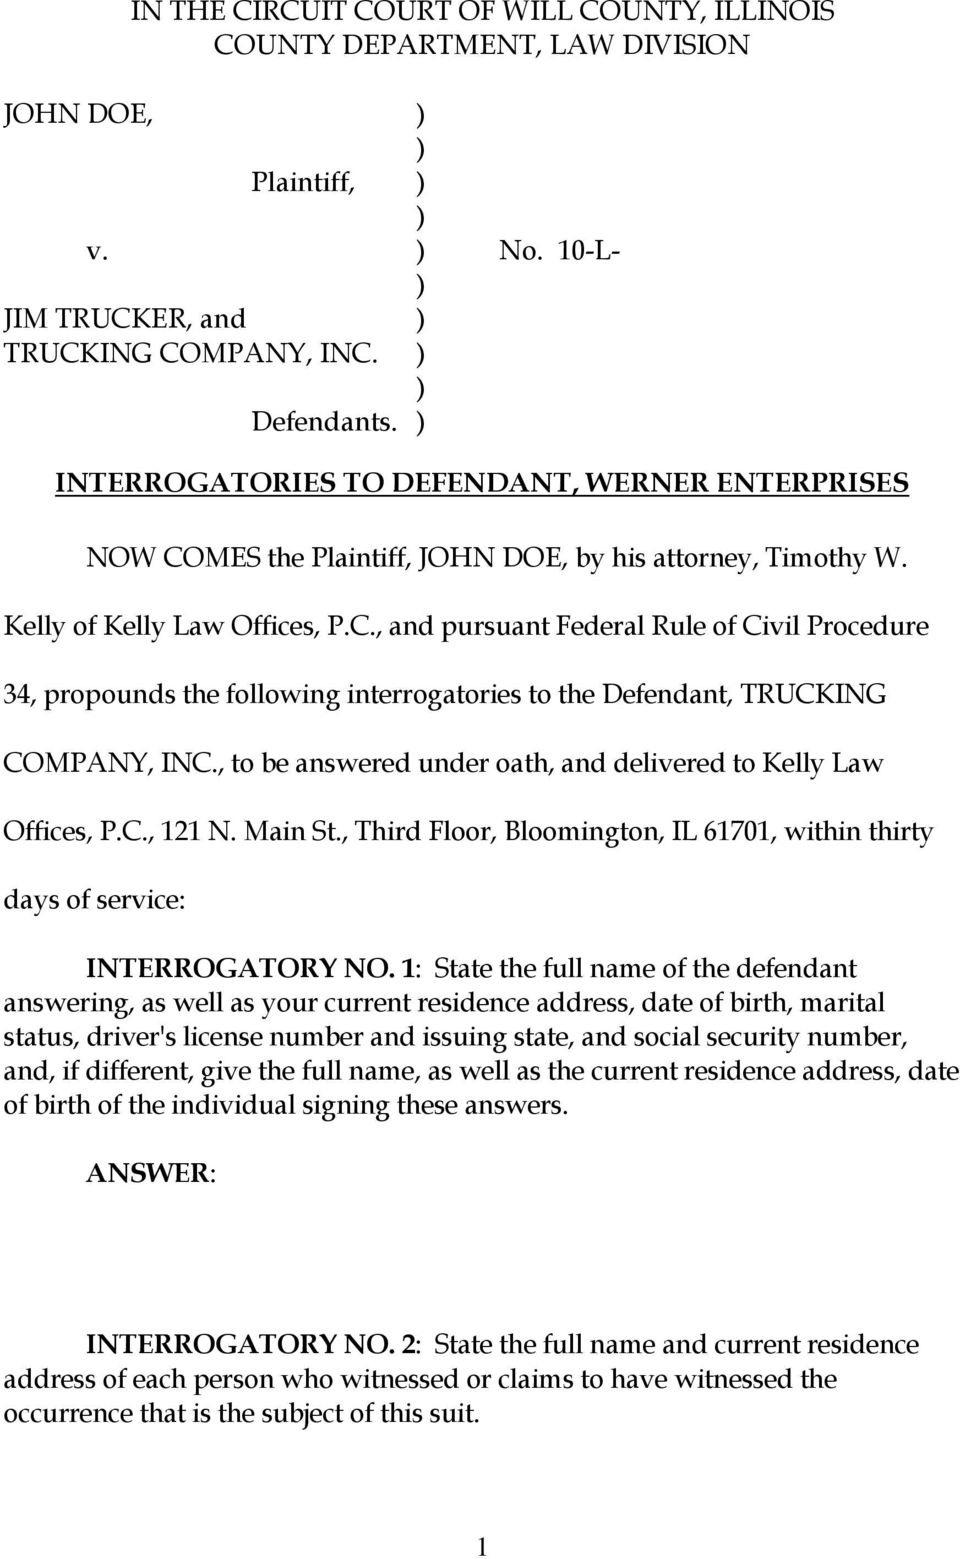 , to be answered under oath, and delivered to Kelly Law Offices, P.C., 121 N. Main St., Third Floor, Bloomington, IL 61701, within thirty days of service: INTERROGATORY NO.